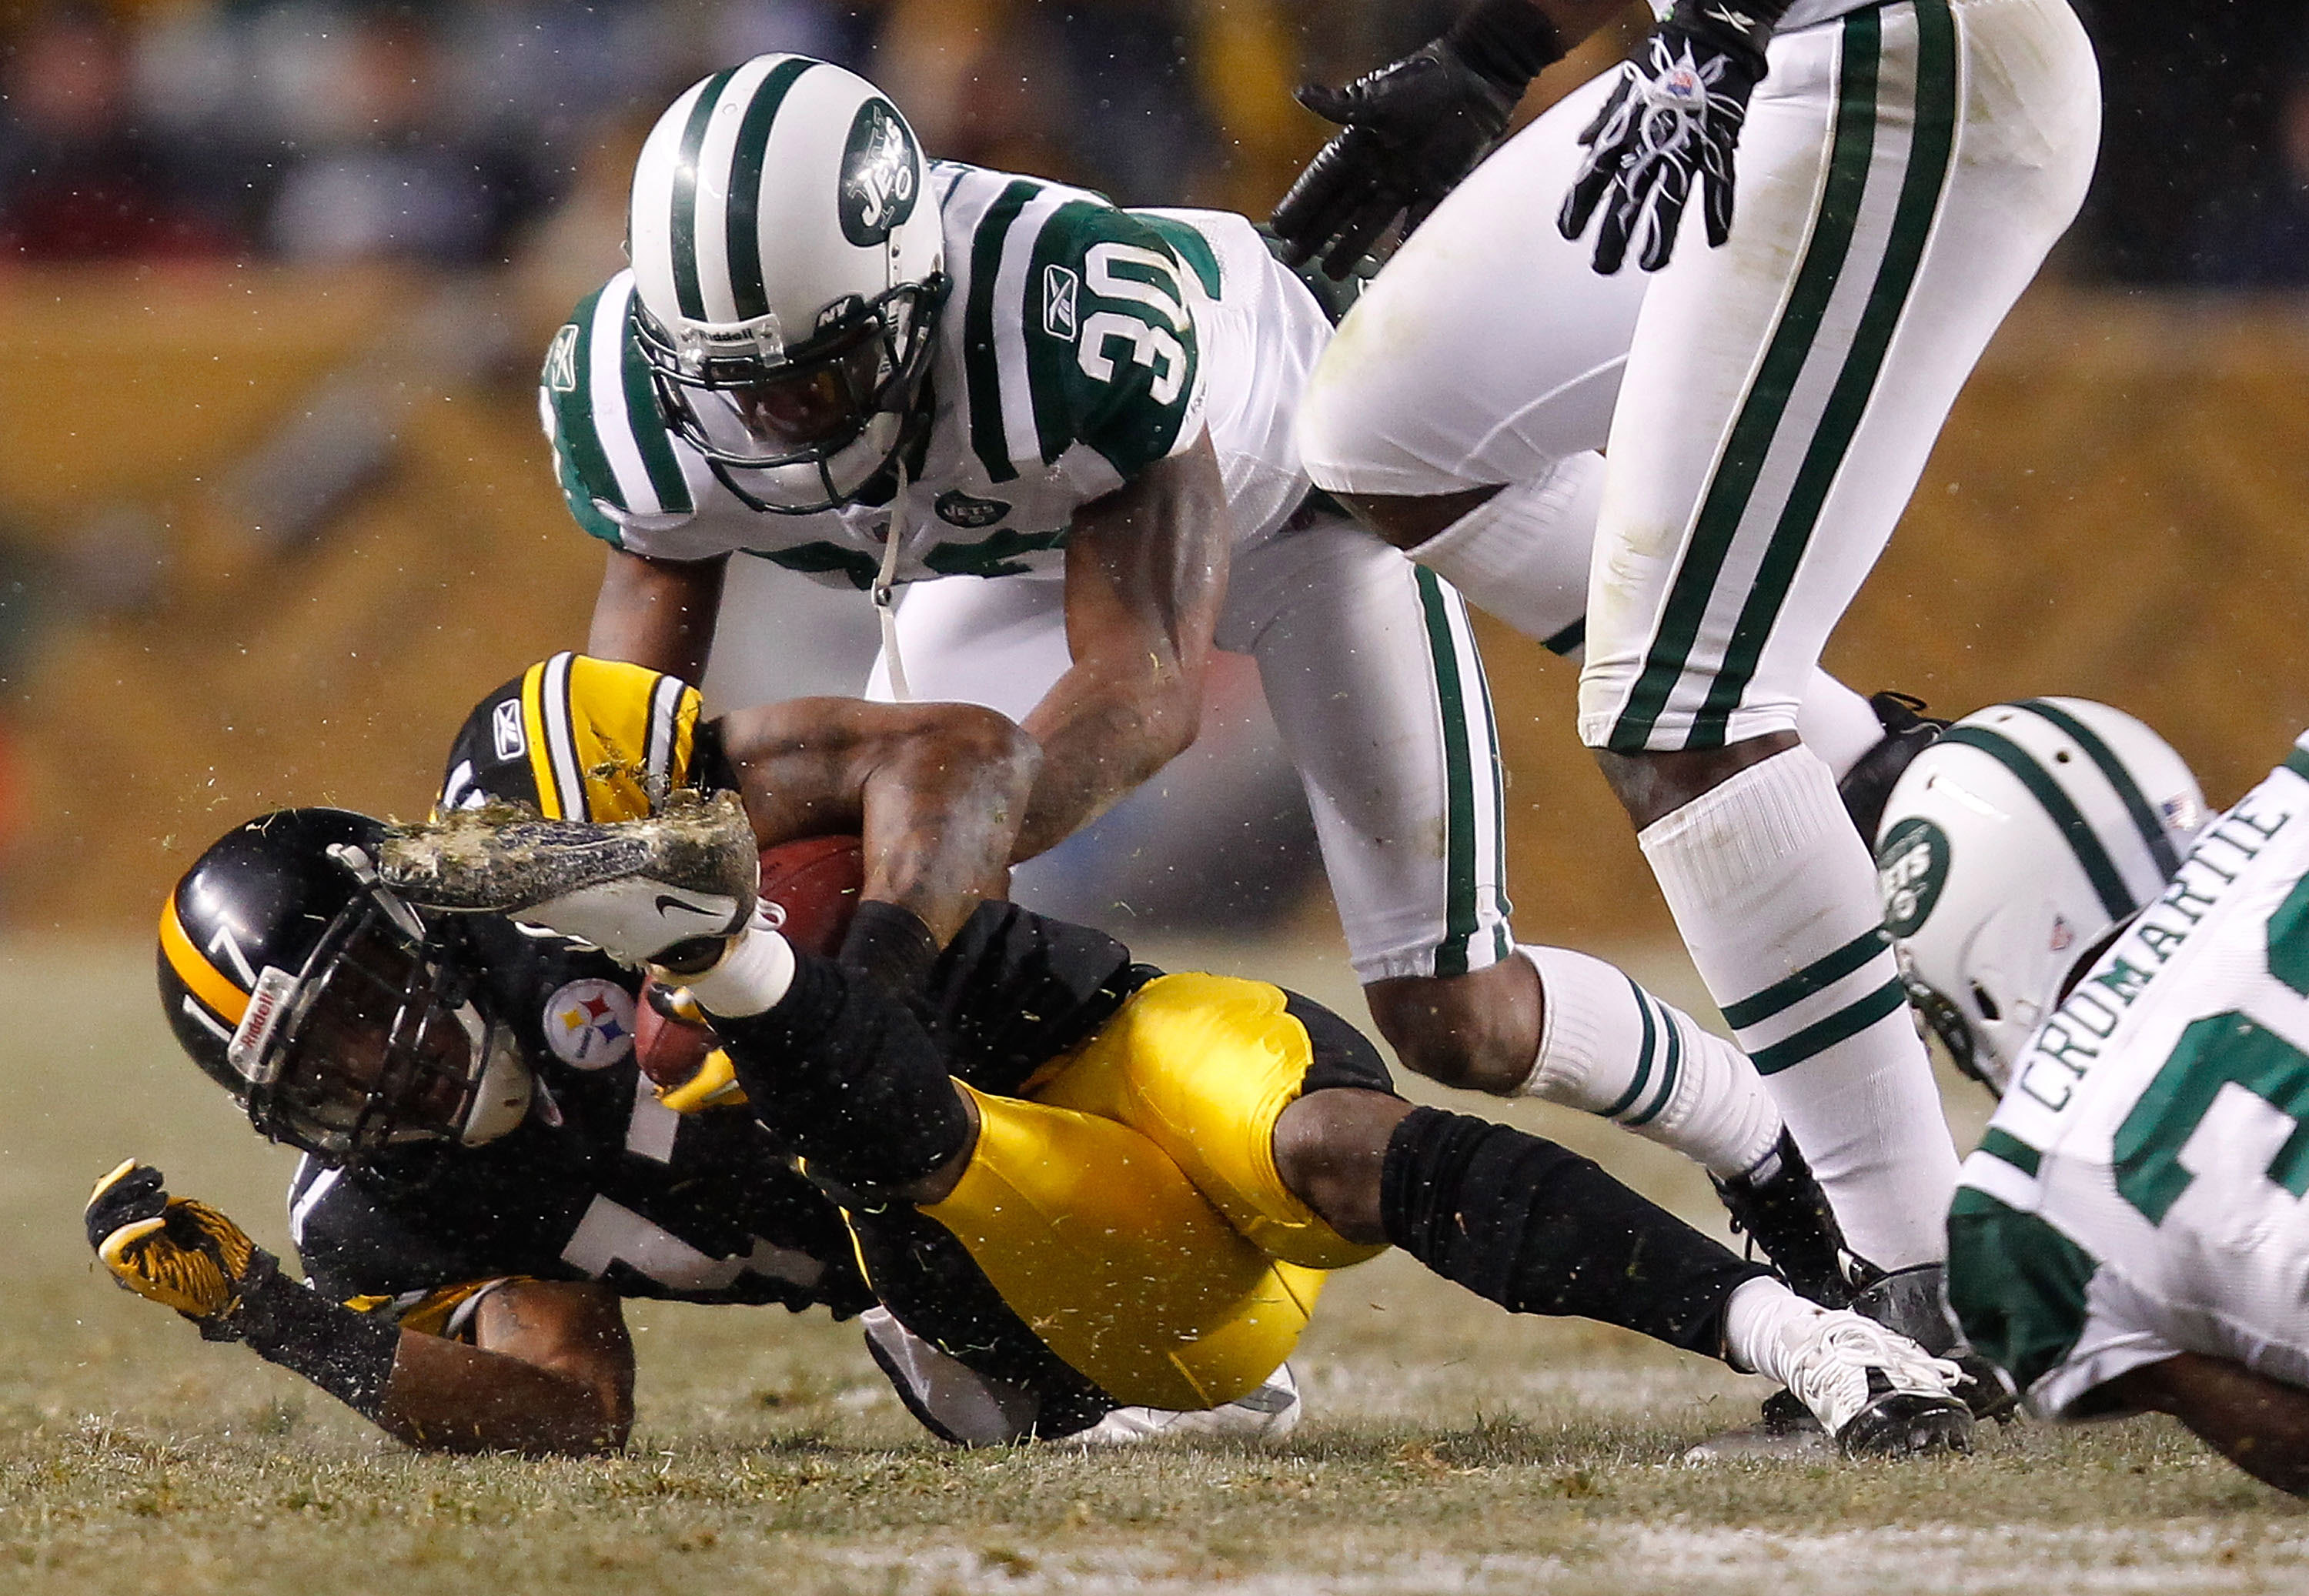 PITTSBURGH, PA - DECEMBER 19:  Drew Coleman #30 of the New York Jets makes a tackle on Mike Wallace #17 of the Pittsburgh Steelers during the game on December 19, 2010 at Heinz Field in Pittsburgh, Pennsylvania.  (Photo by Jared Wickerham/Getty Images)